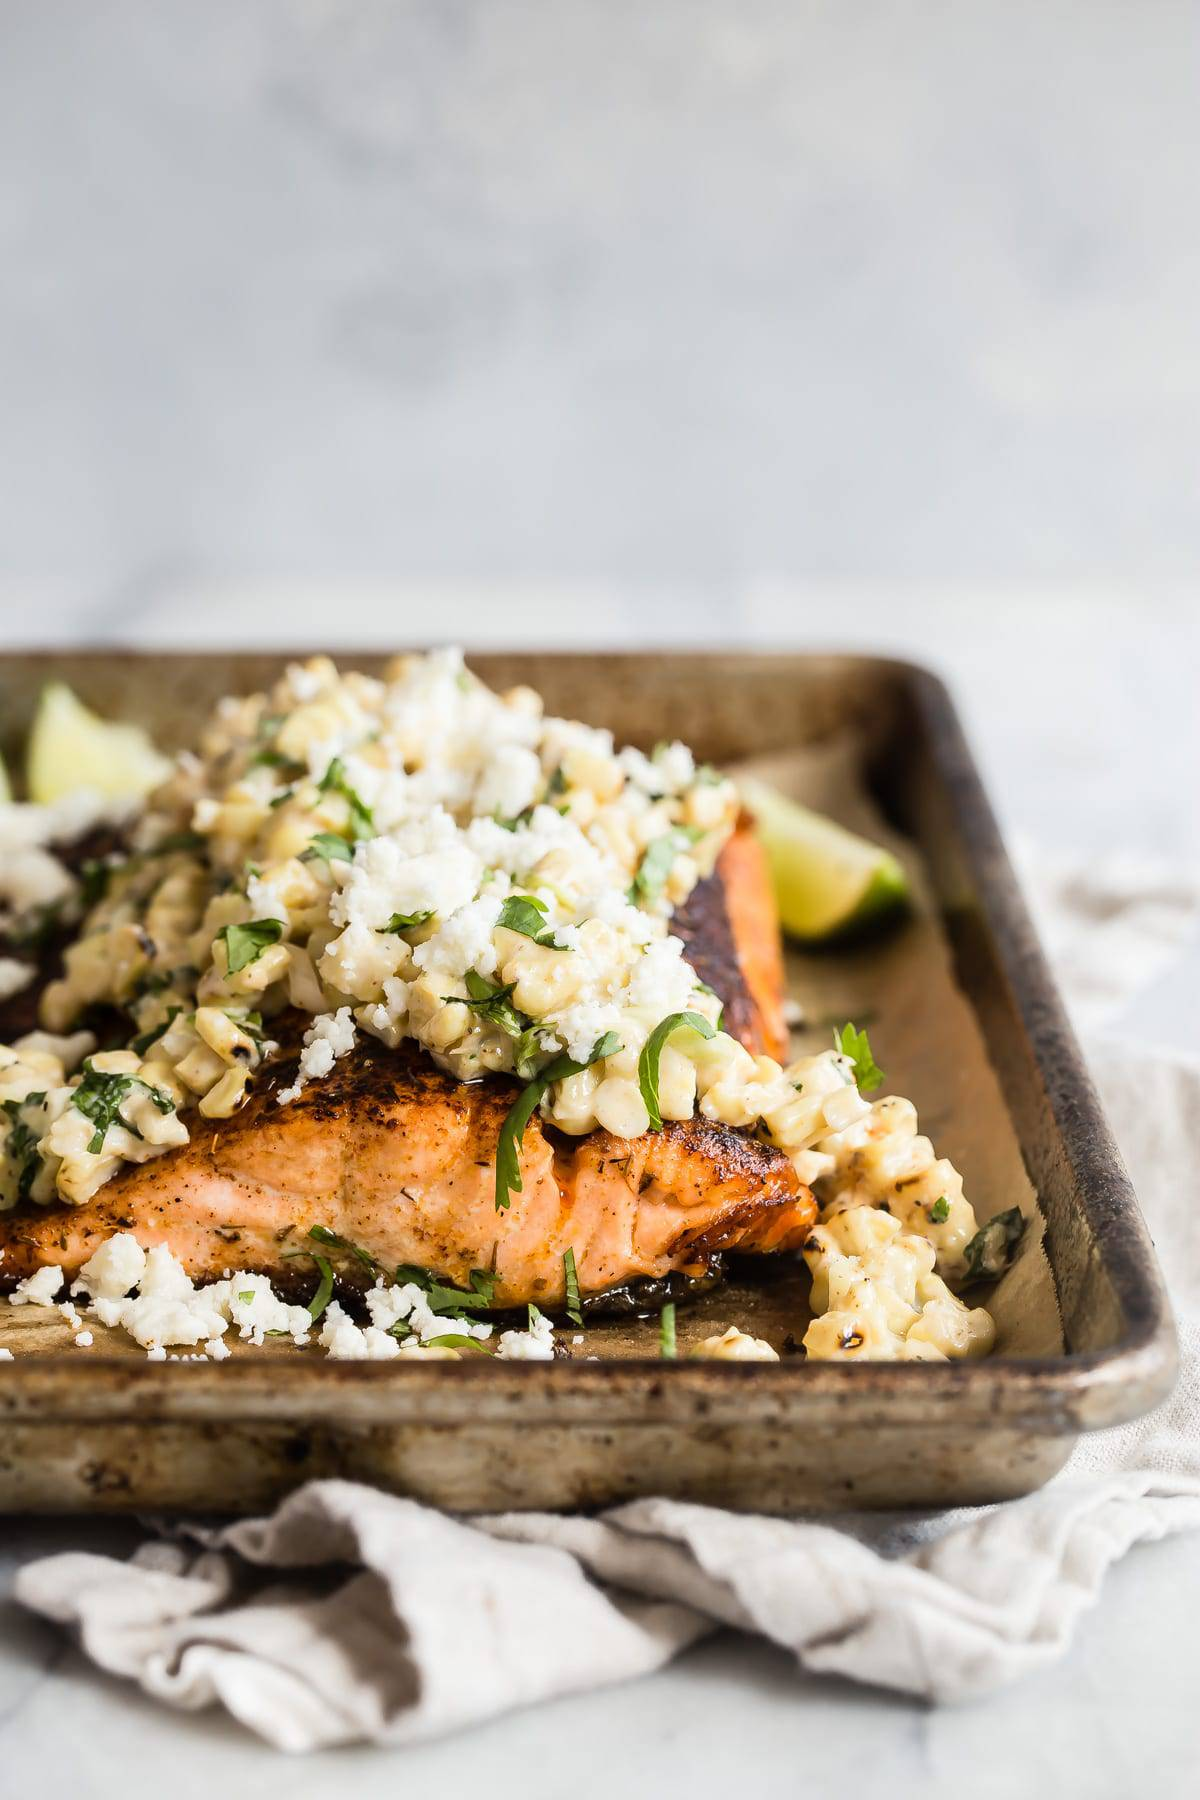 Blackened Salmon with Mexican Style Street Corn